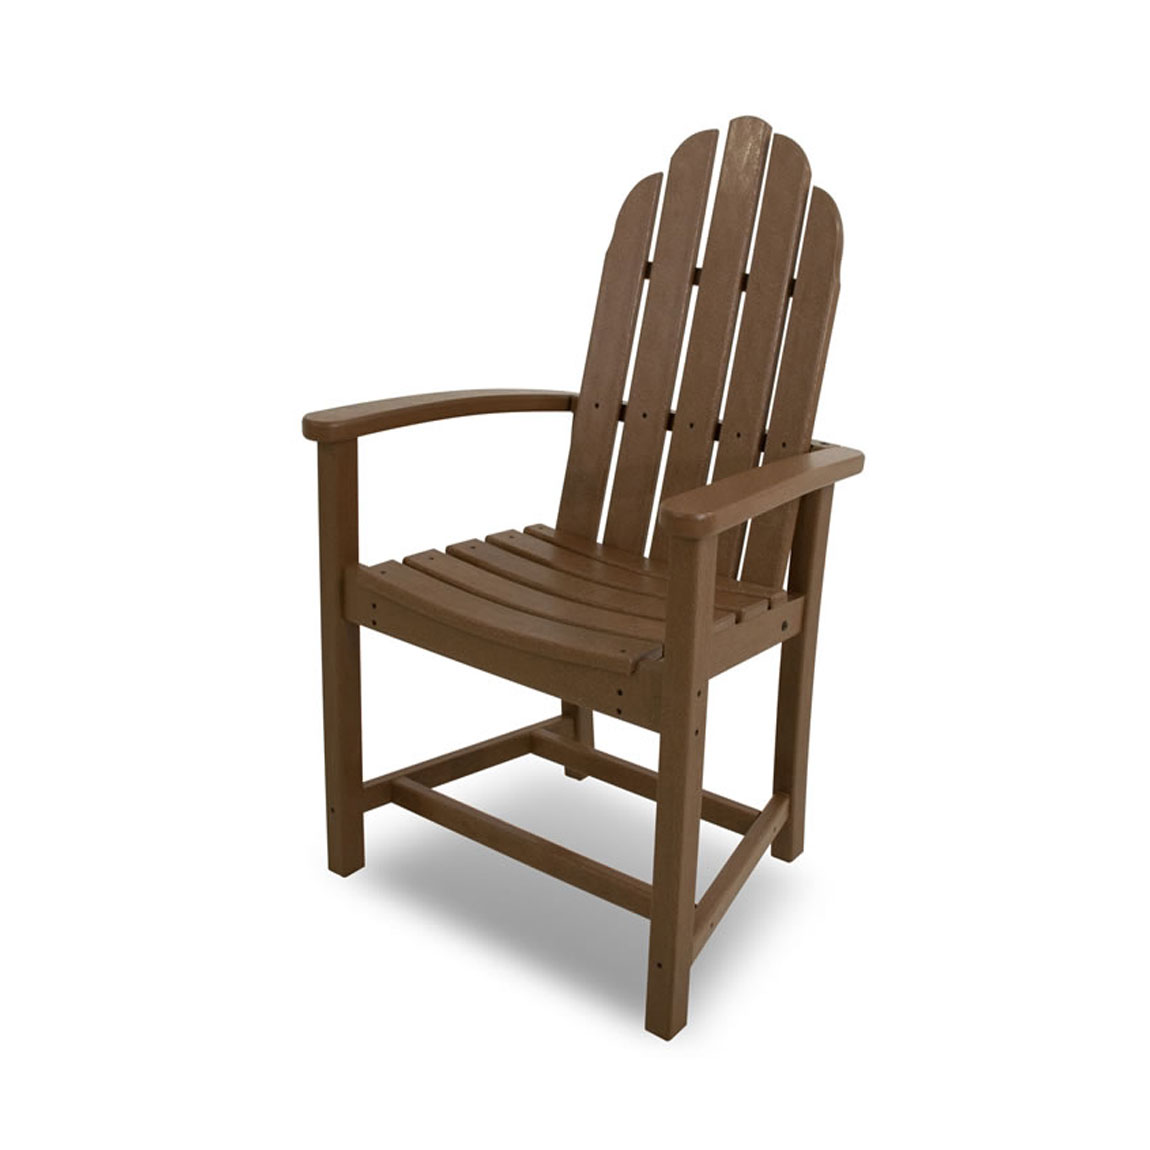 Recycled Plastic Classic Adirondack Dining Chair by Poly-Wood Adirondack